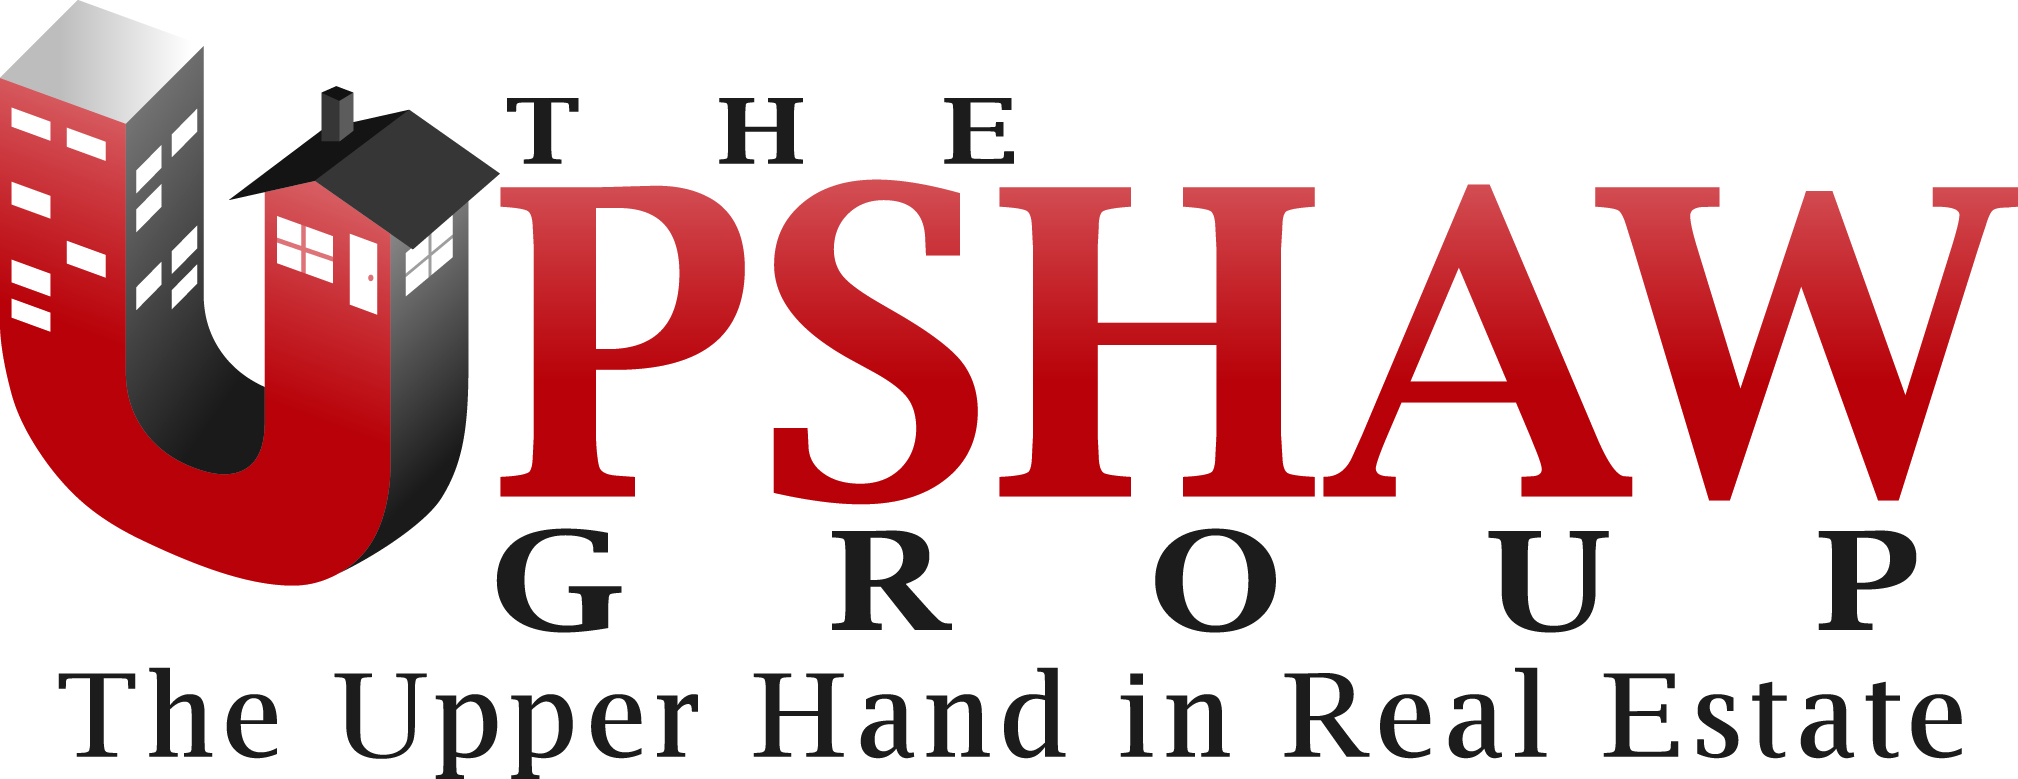 Upshaw Group Logo